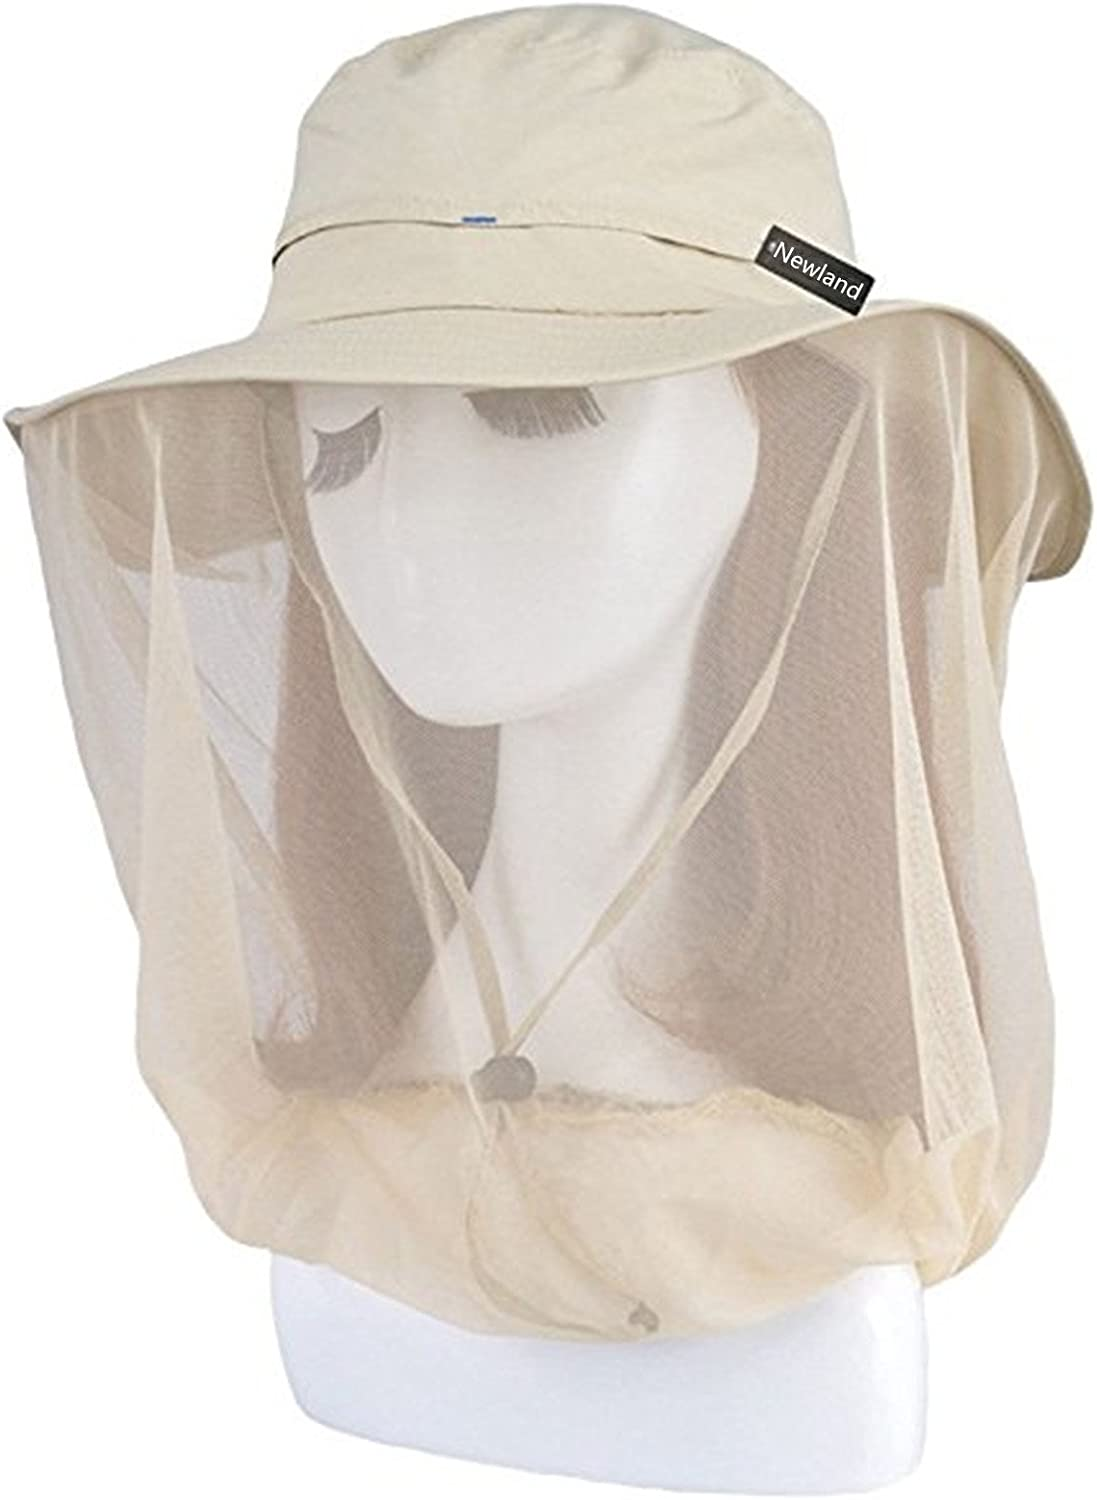 Newland Mosquito Head Net Hat, Outdoor UPF 50 Sun Hat Bucket Hat with Net Mesh Protection from Bee Mosquito for Outdoor or Women or Fishing